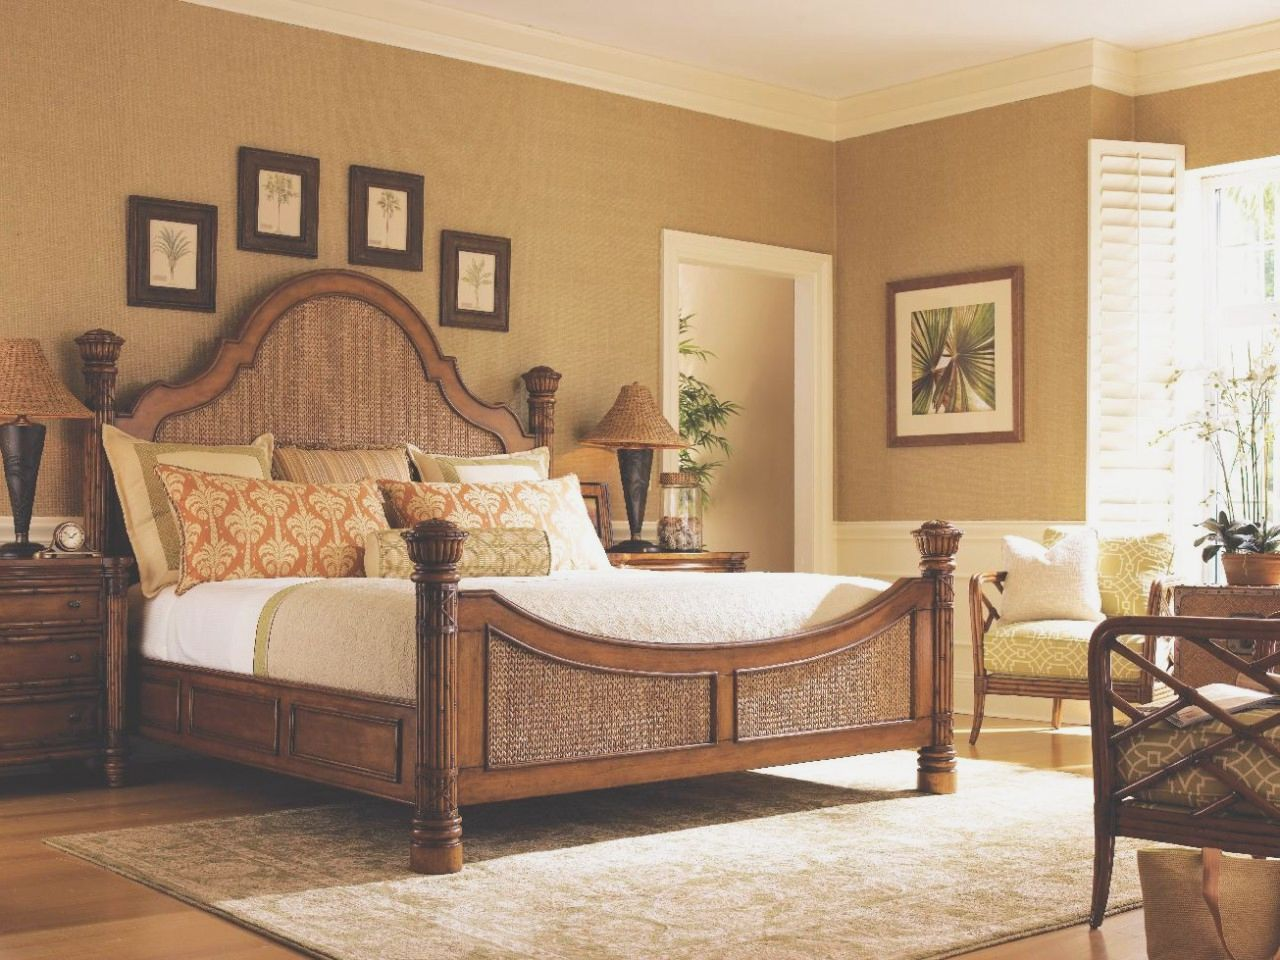 Bedroom Sets For Sale - Gr8ee  Tommy bahama bedroom furniture